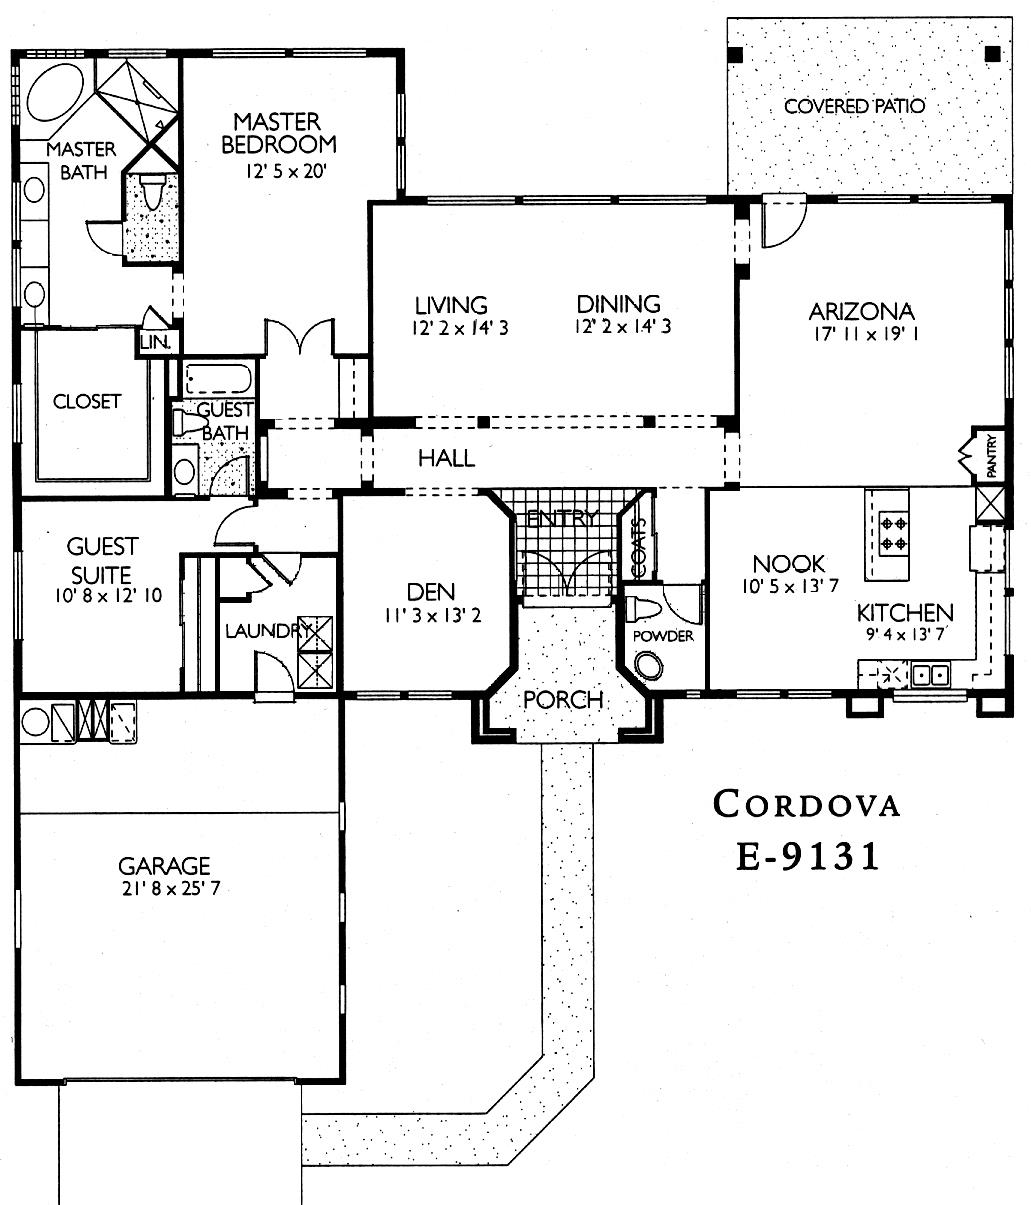 Sun City Grand Cordova floor plan, Del Webb Sun City Grand Floor Plan Model Home House Plans Floorplans Models in Surprise Phoenix Arizona AZ Ken Meade Realty Kathy Anderson